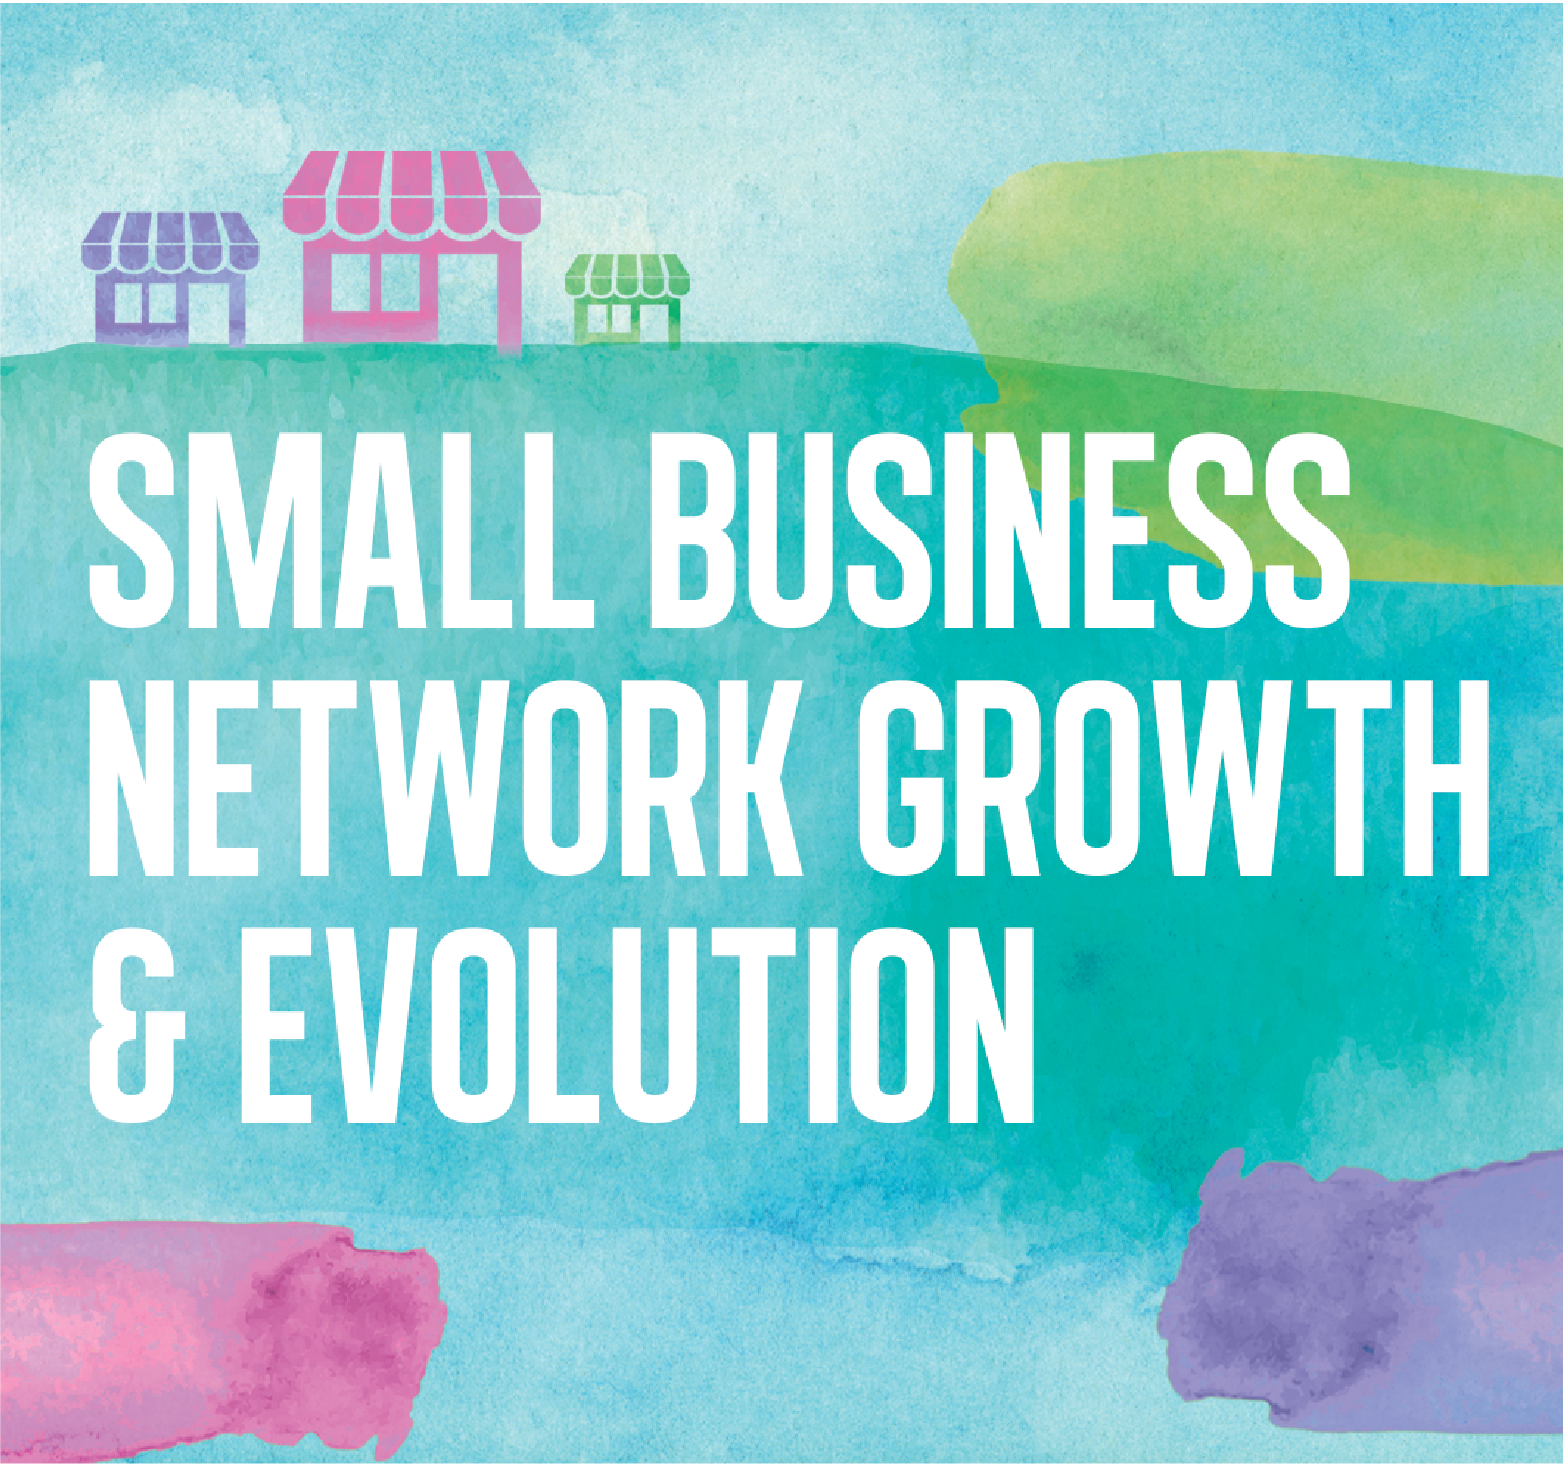 Non-Profits: Apply & Help Support Small Business Recovery